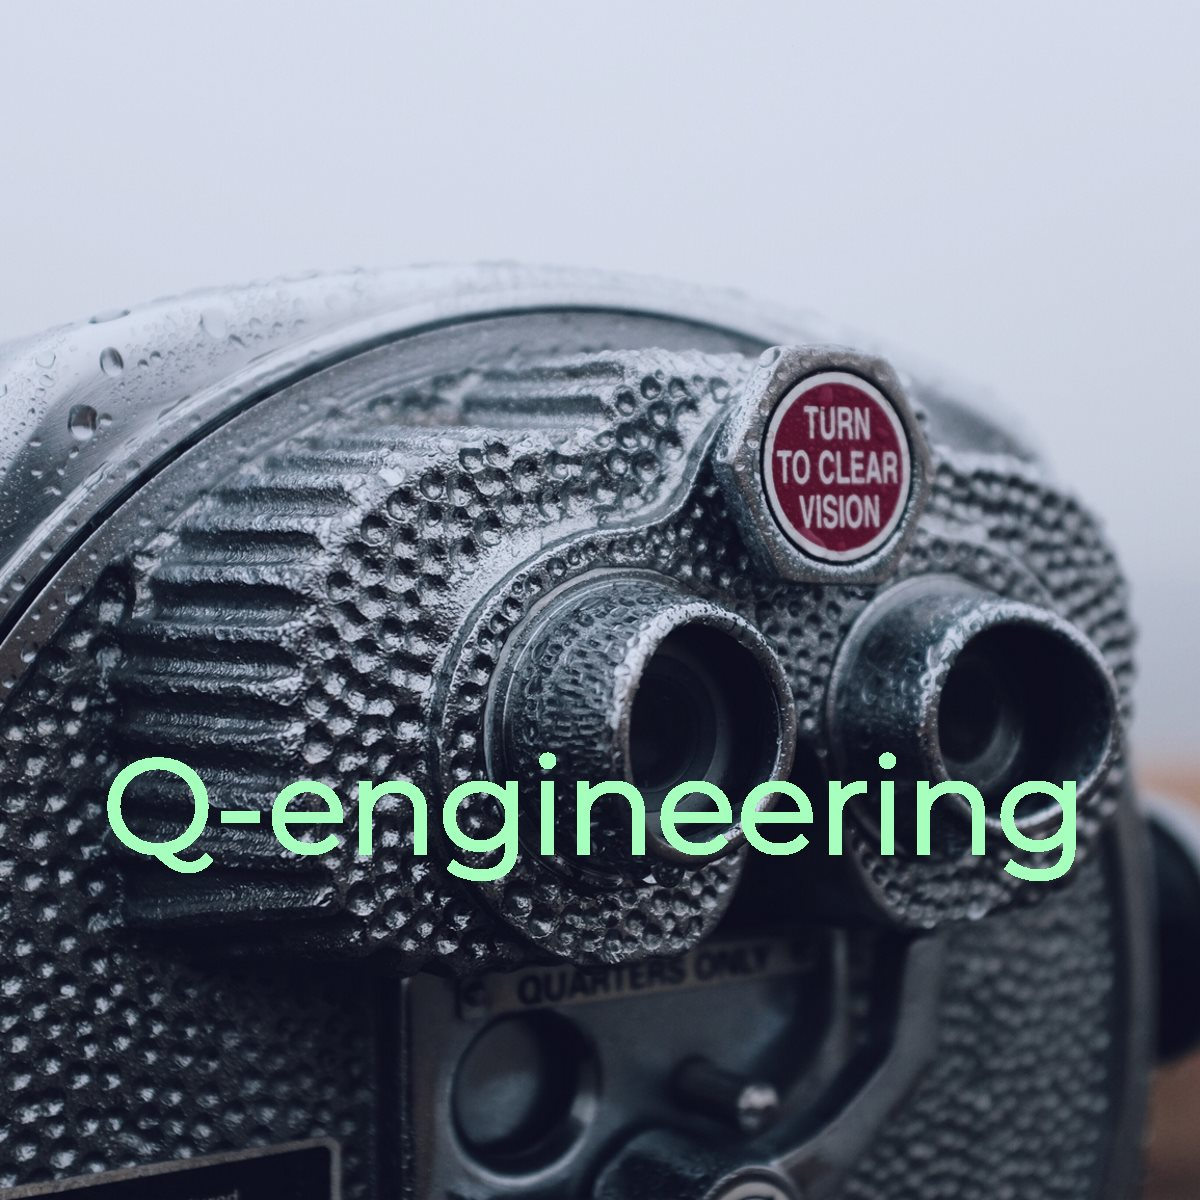 Deep learning with Raspberry Pi and alternatives in 2019 - Q-engineering